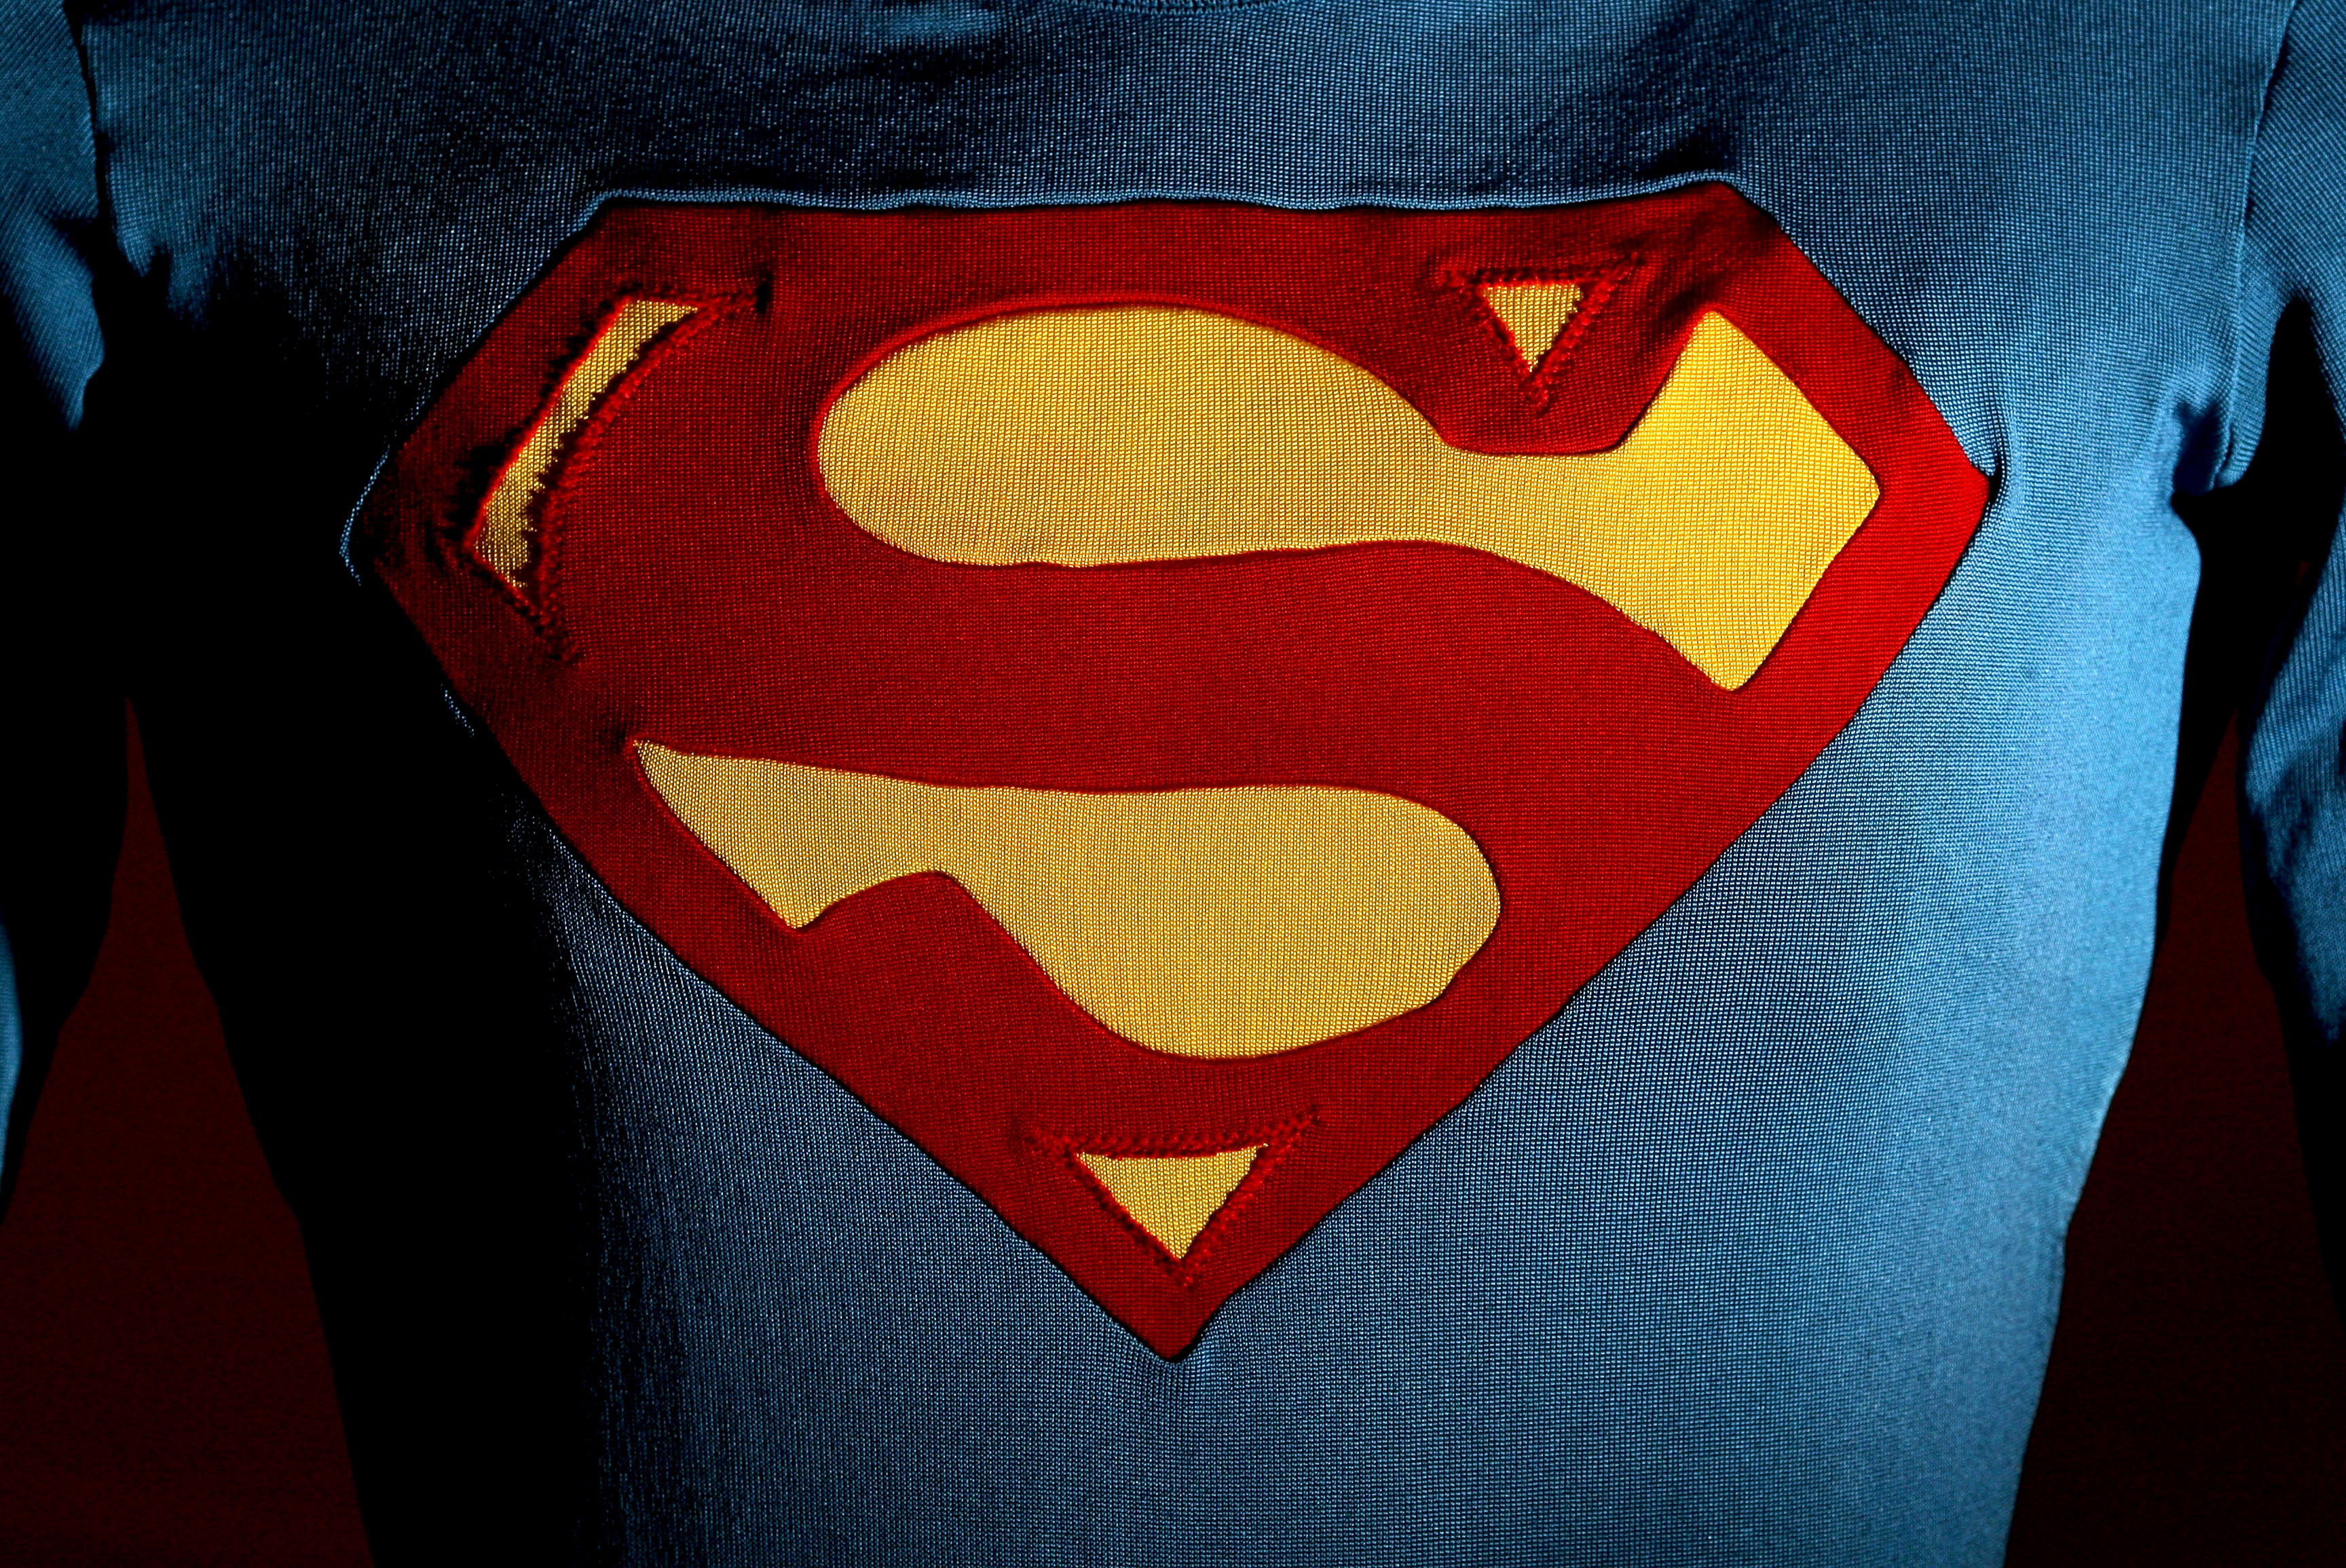 The Superman costume as worn by Christopher Reeve in Superman III is displayed at the Auction House of Bonhams and Goodman on May 23, 2009 in Melbourne, Australia.